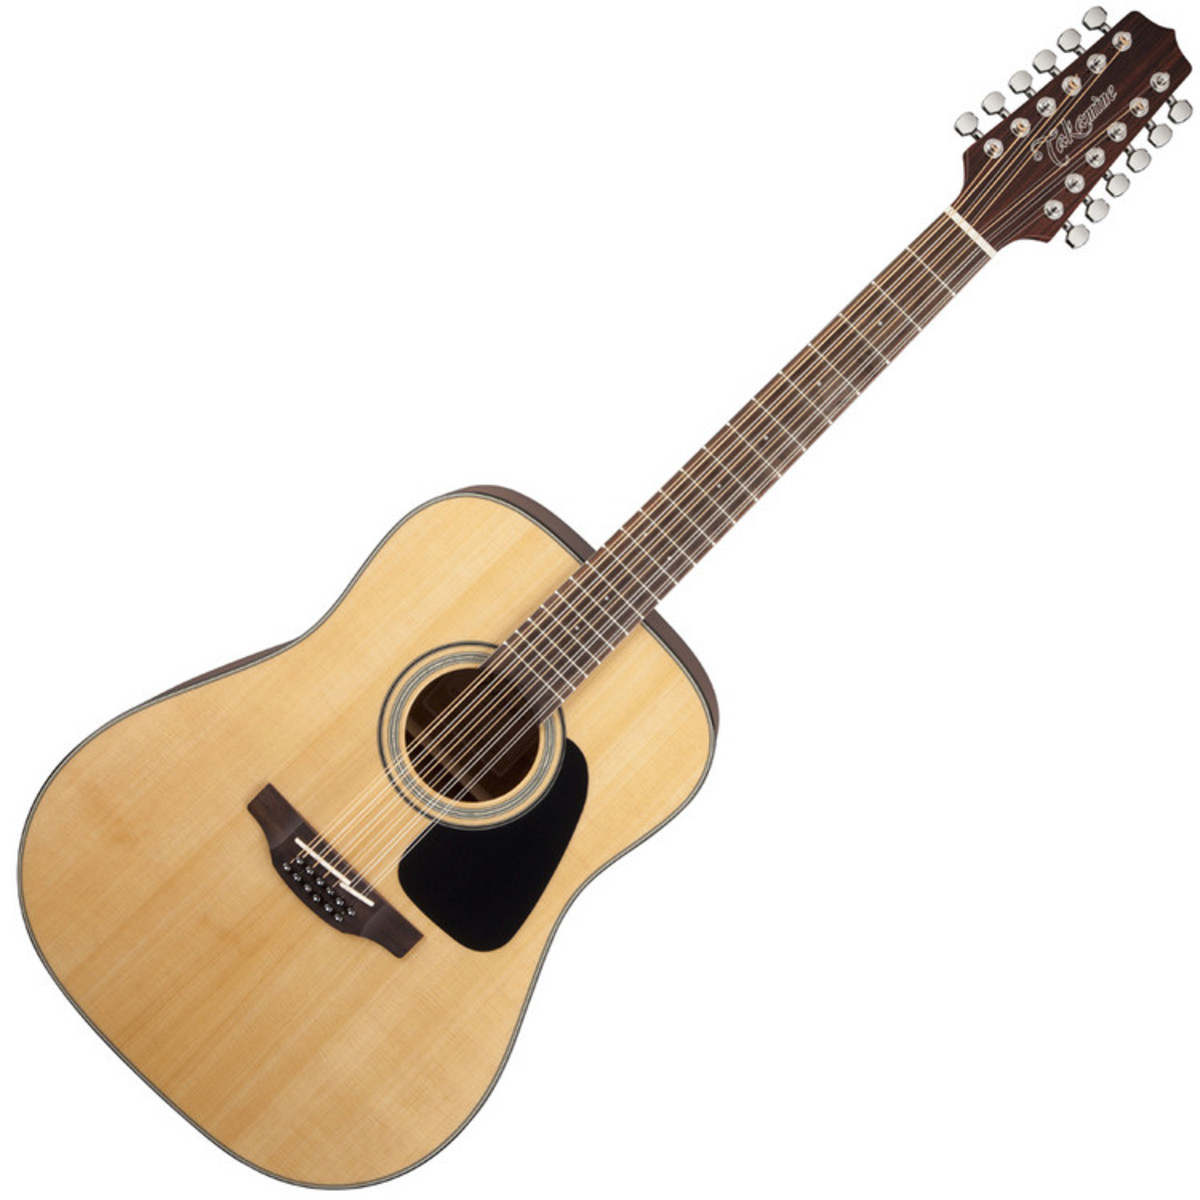 takamine gd30 12 12 string dreadnought acoustic natural at gear4music. Black Bedroom Furniture Sets. Home Design Ideas